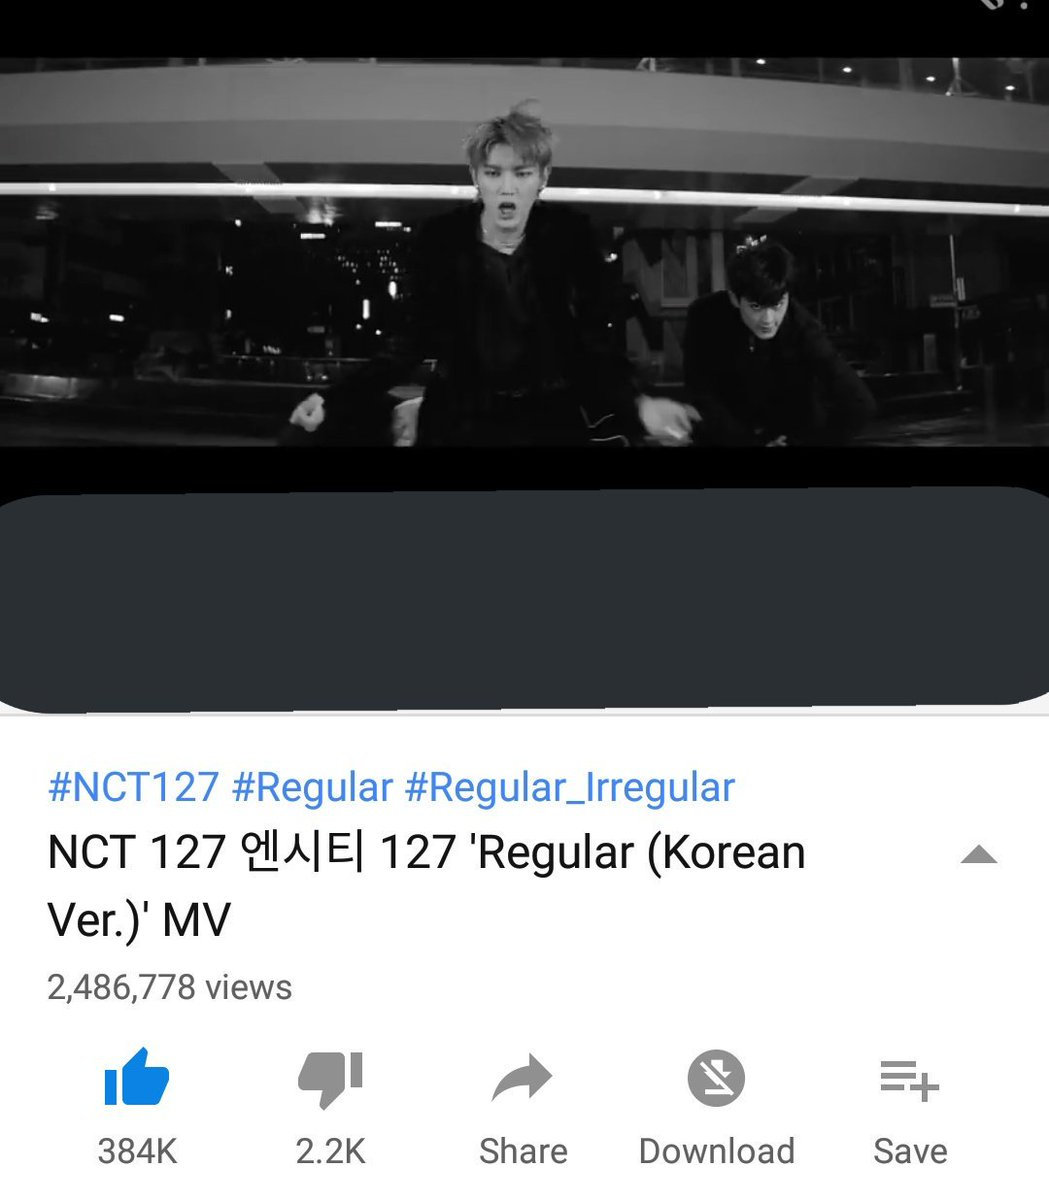 yesterday when i checked its  2, 052, 731 million views  and now its 2, 486, 778 million views   that&#39;s a slow and few increase tho  we all know yt views are important &amp; NCT worked so much for this, this mv deserves more!  LET&#39;S GET IT FAM STREAM HARDER!  #NCT127_Regular_Kor <br>http://pic.twitter.com/KFohmjphdP